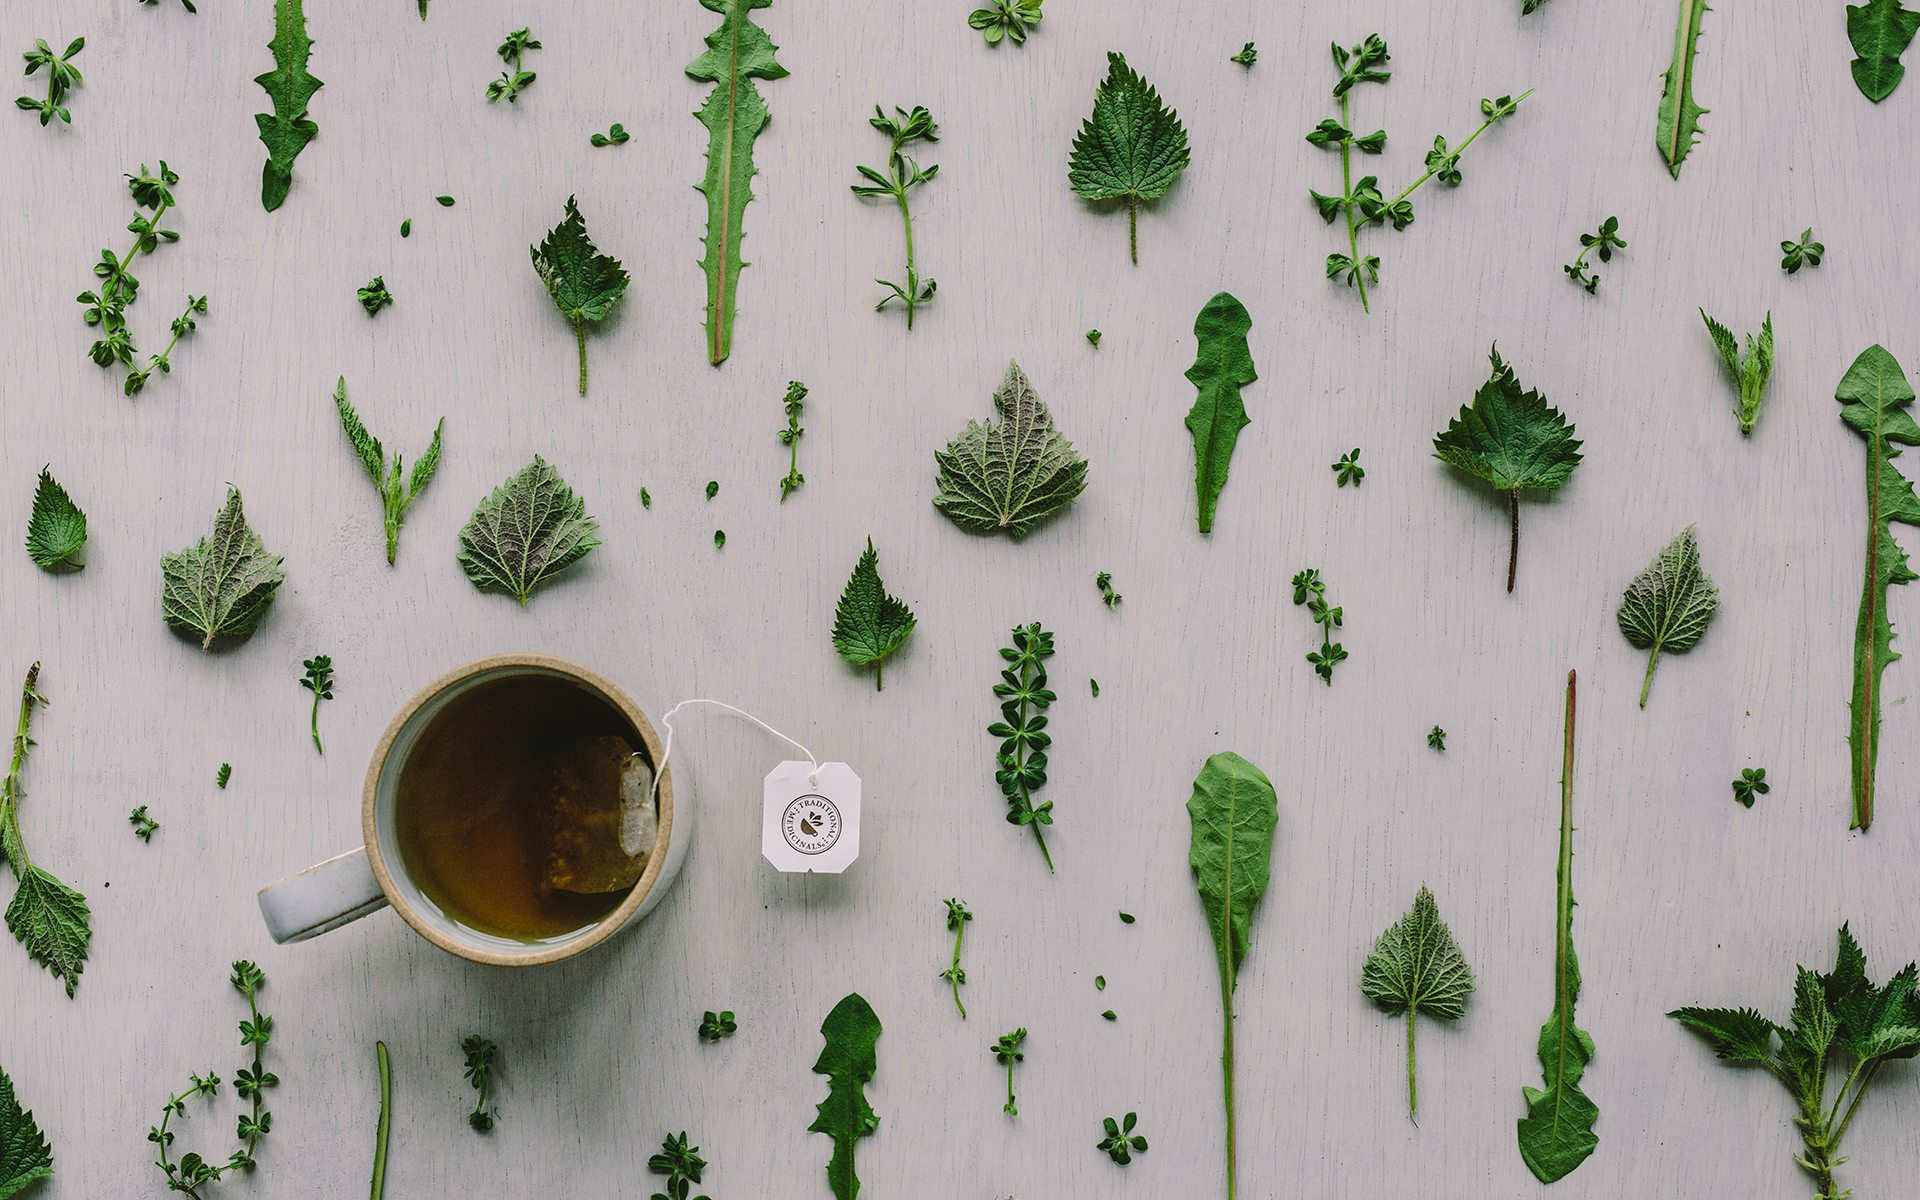 Herbal Wallpaper Spring Tonic Teas Traditional Medicinals Herbal Wellness Teas